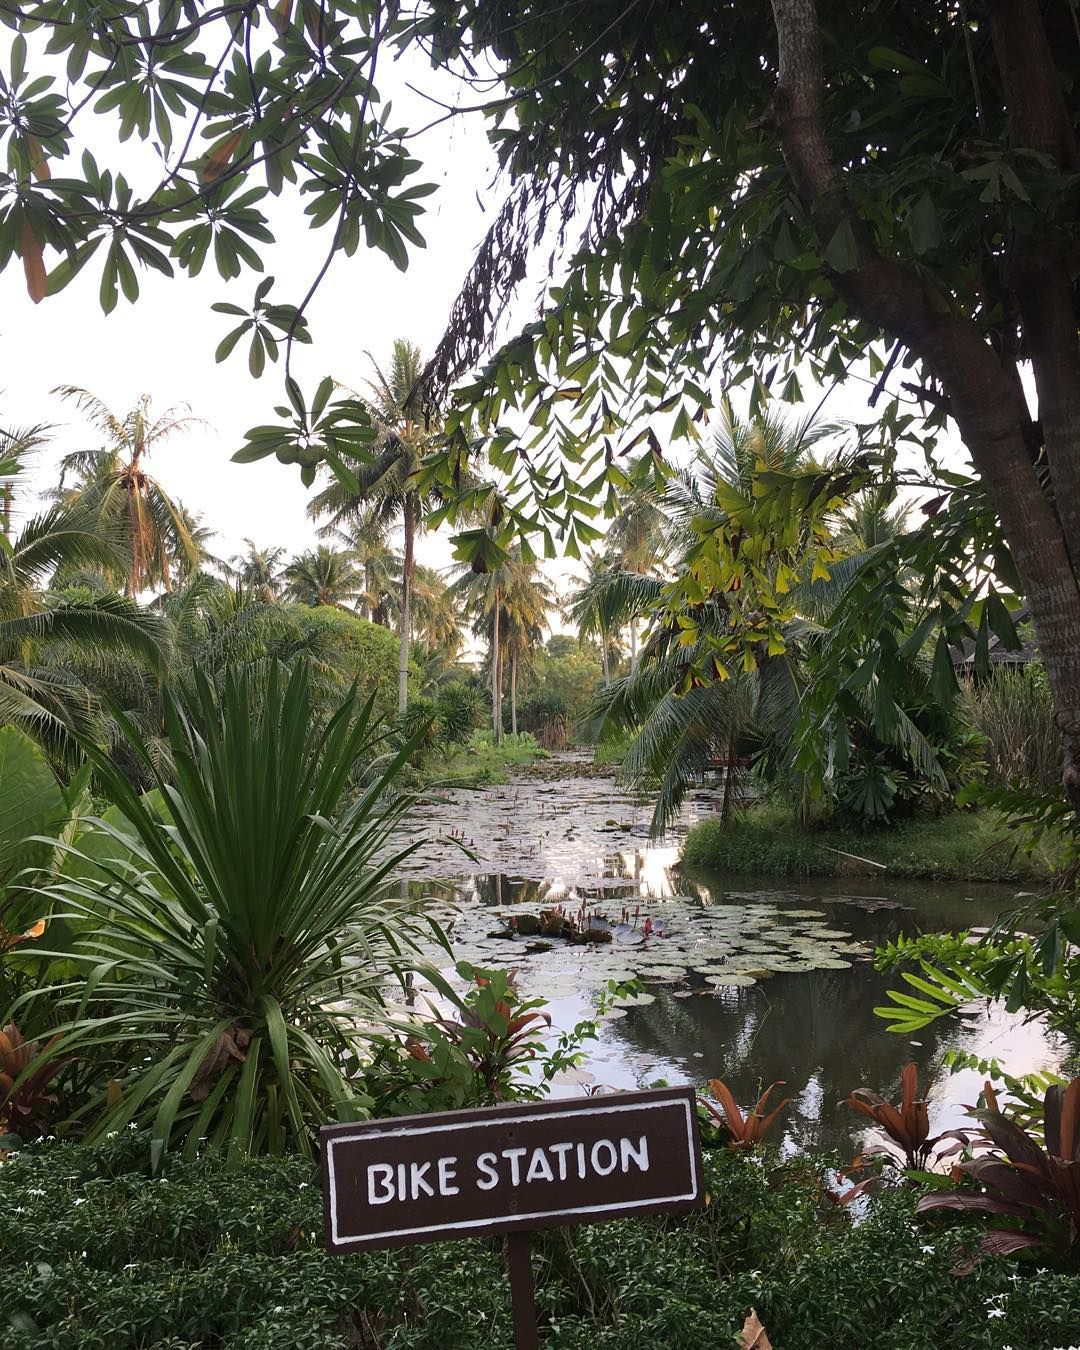 Bike station in the jungle